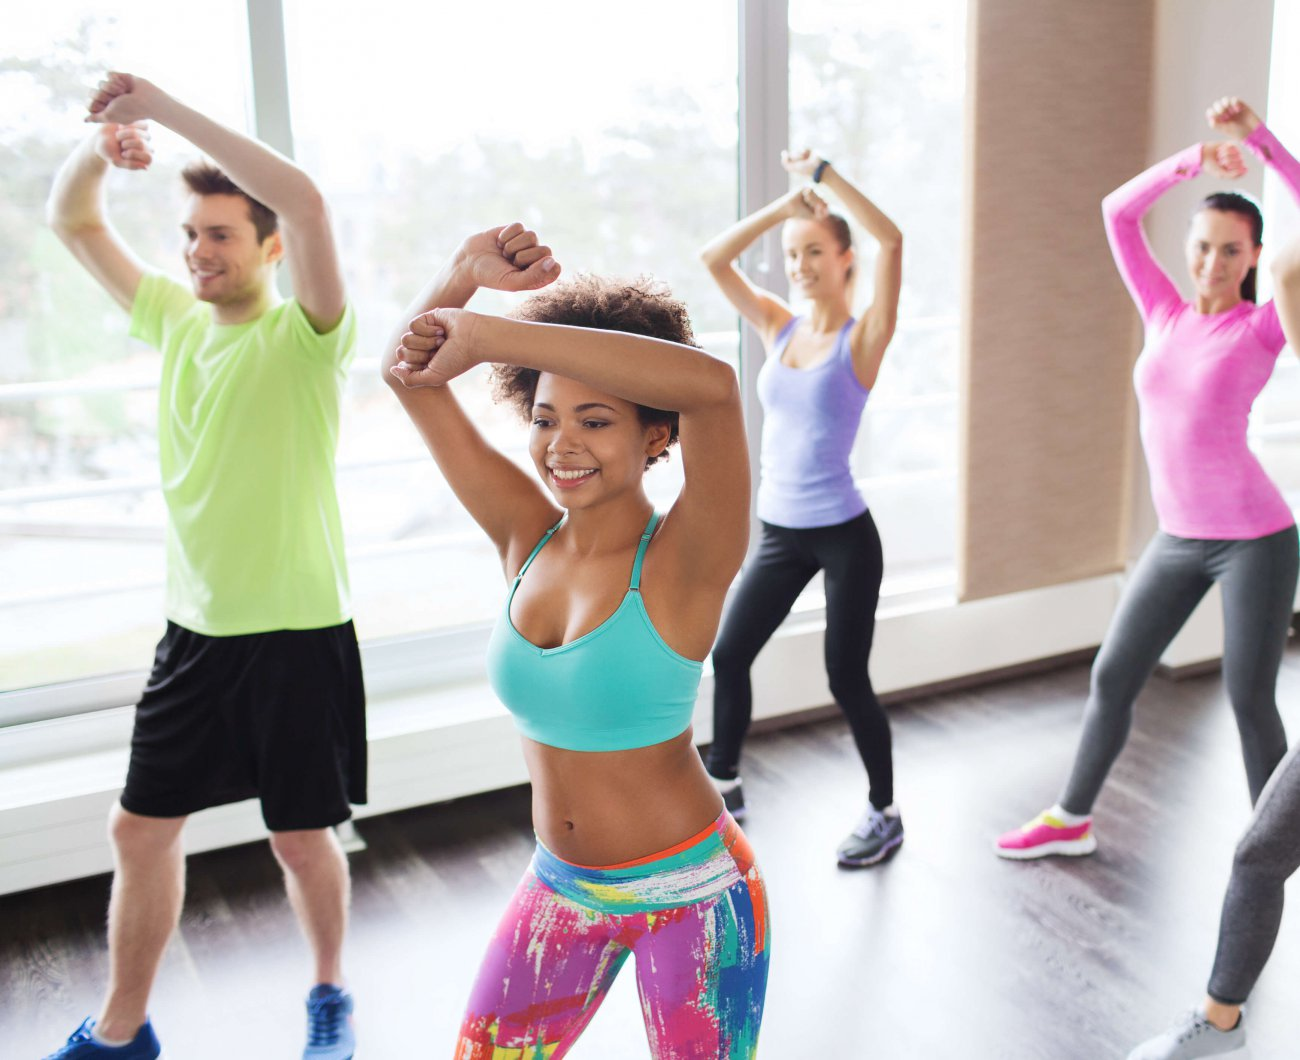 Five people taking part in a dance class